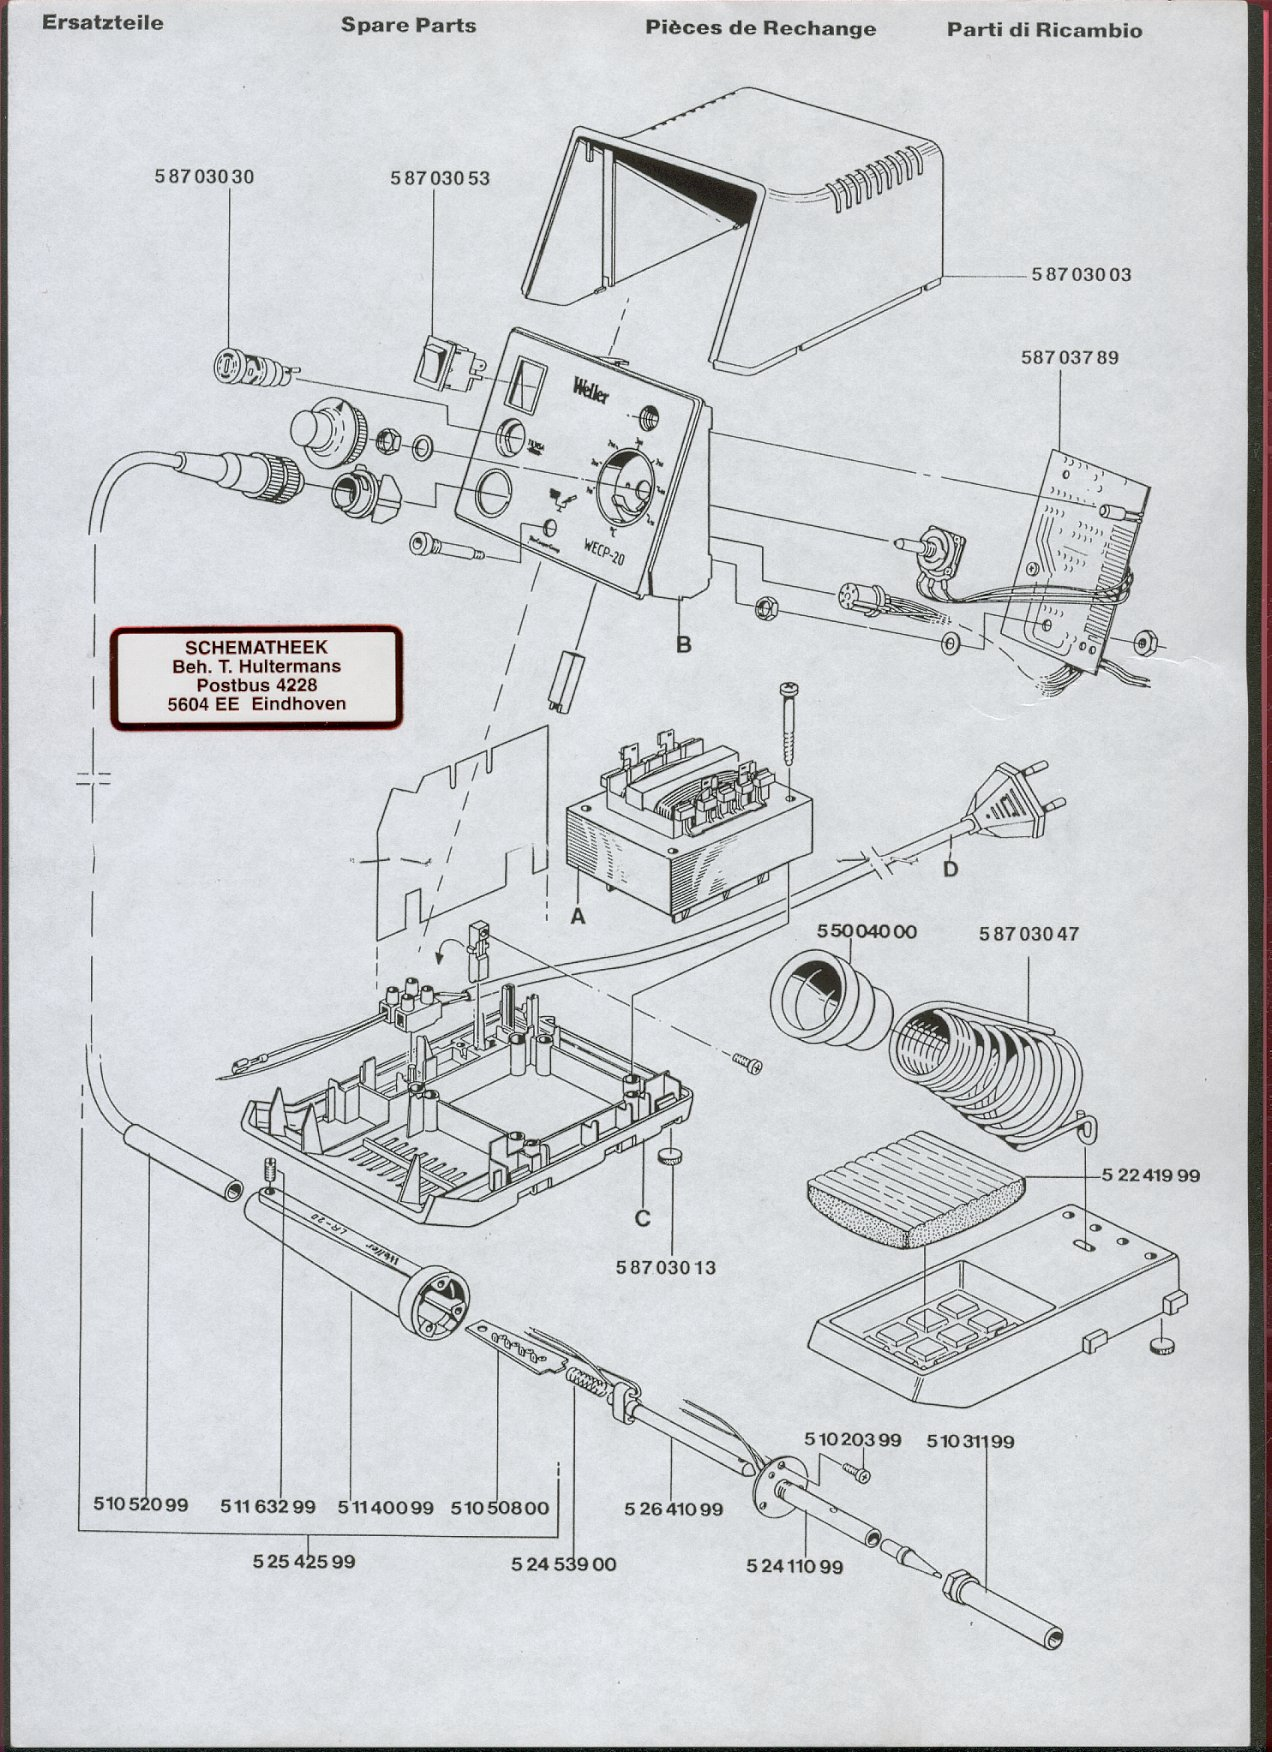 Soldering iron drawing additionally 158156 additionally 704rq1 further Ts100 Soldering Iron furthermore Weller Pes51 Wiring Diagram. on weller soldering iron station